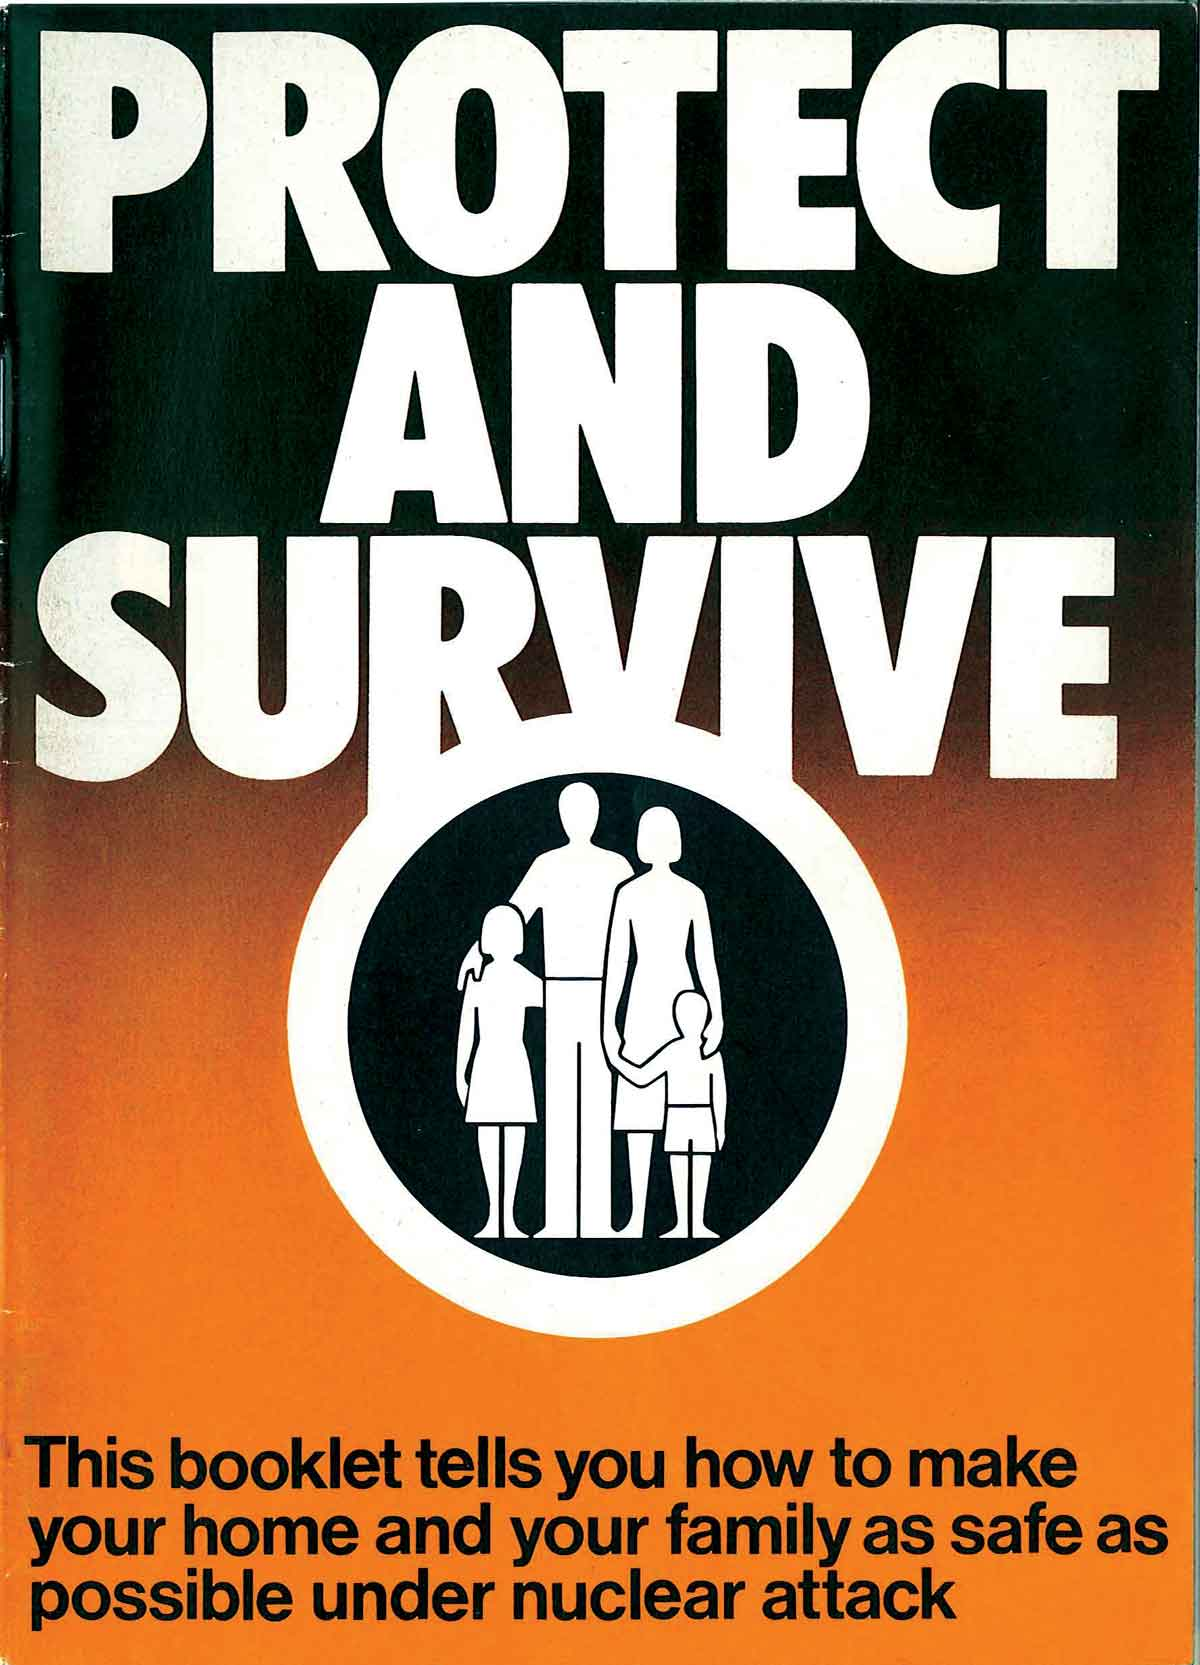 The Home Office Protect and Survive booklet, 1980. Courtesy National Archives/Crown Copyright.